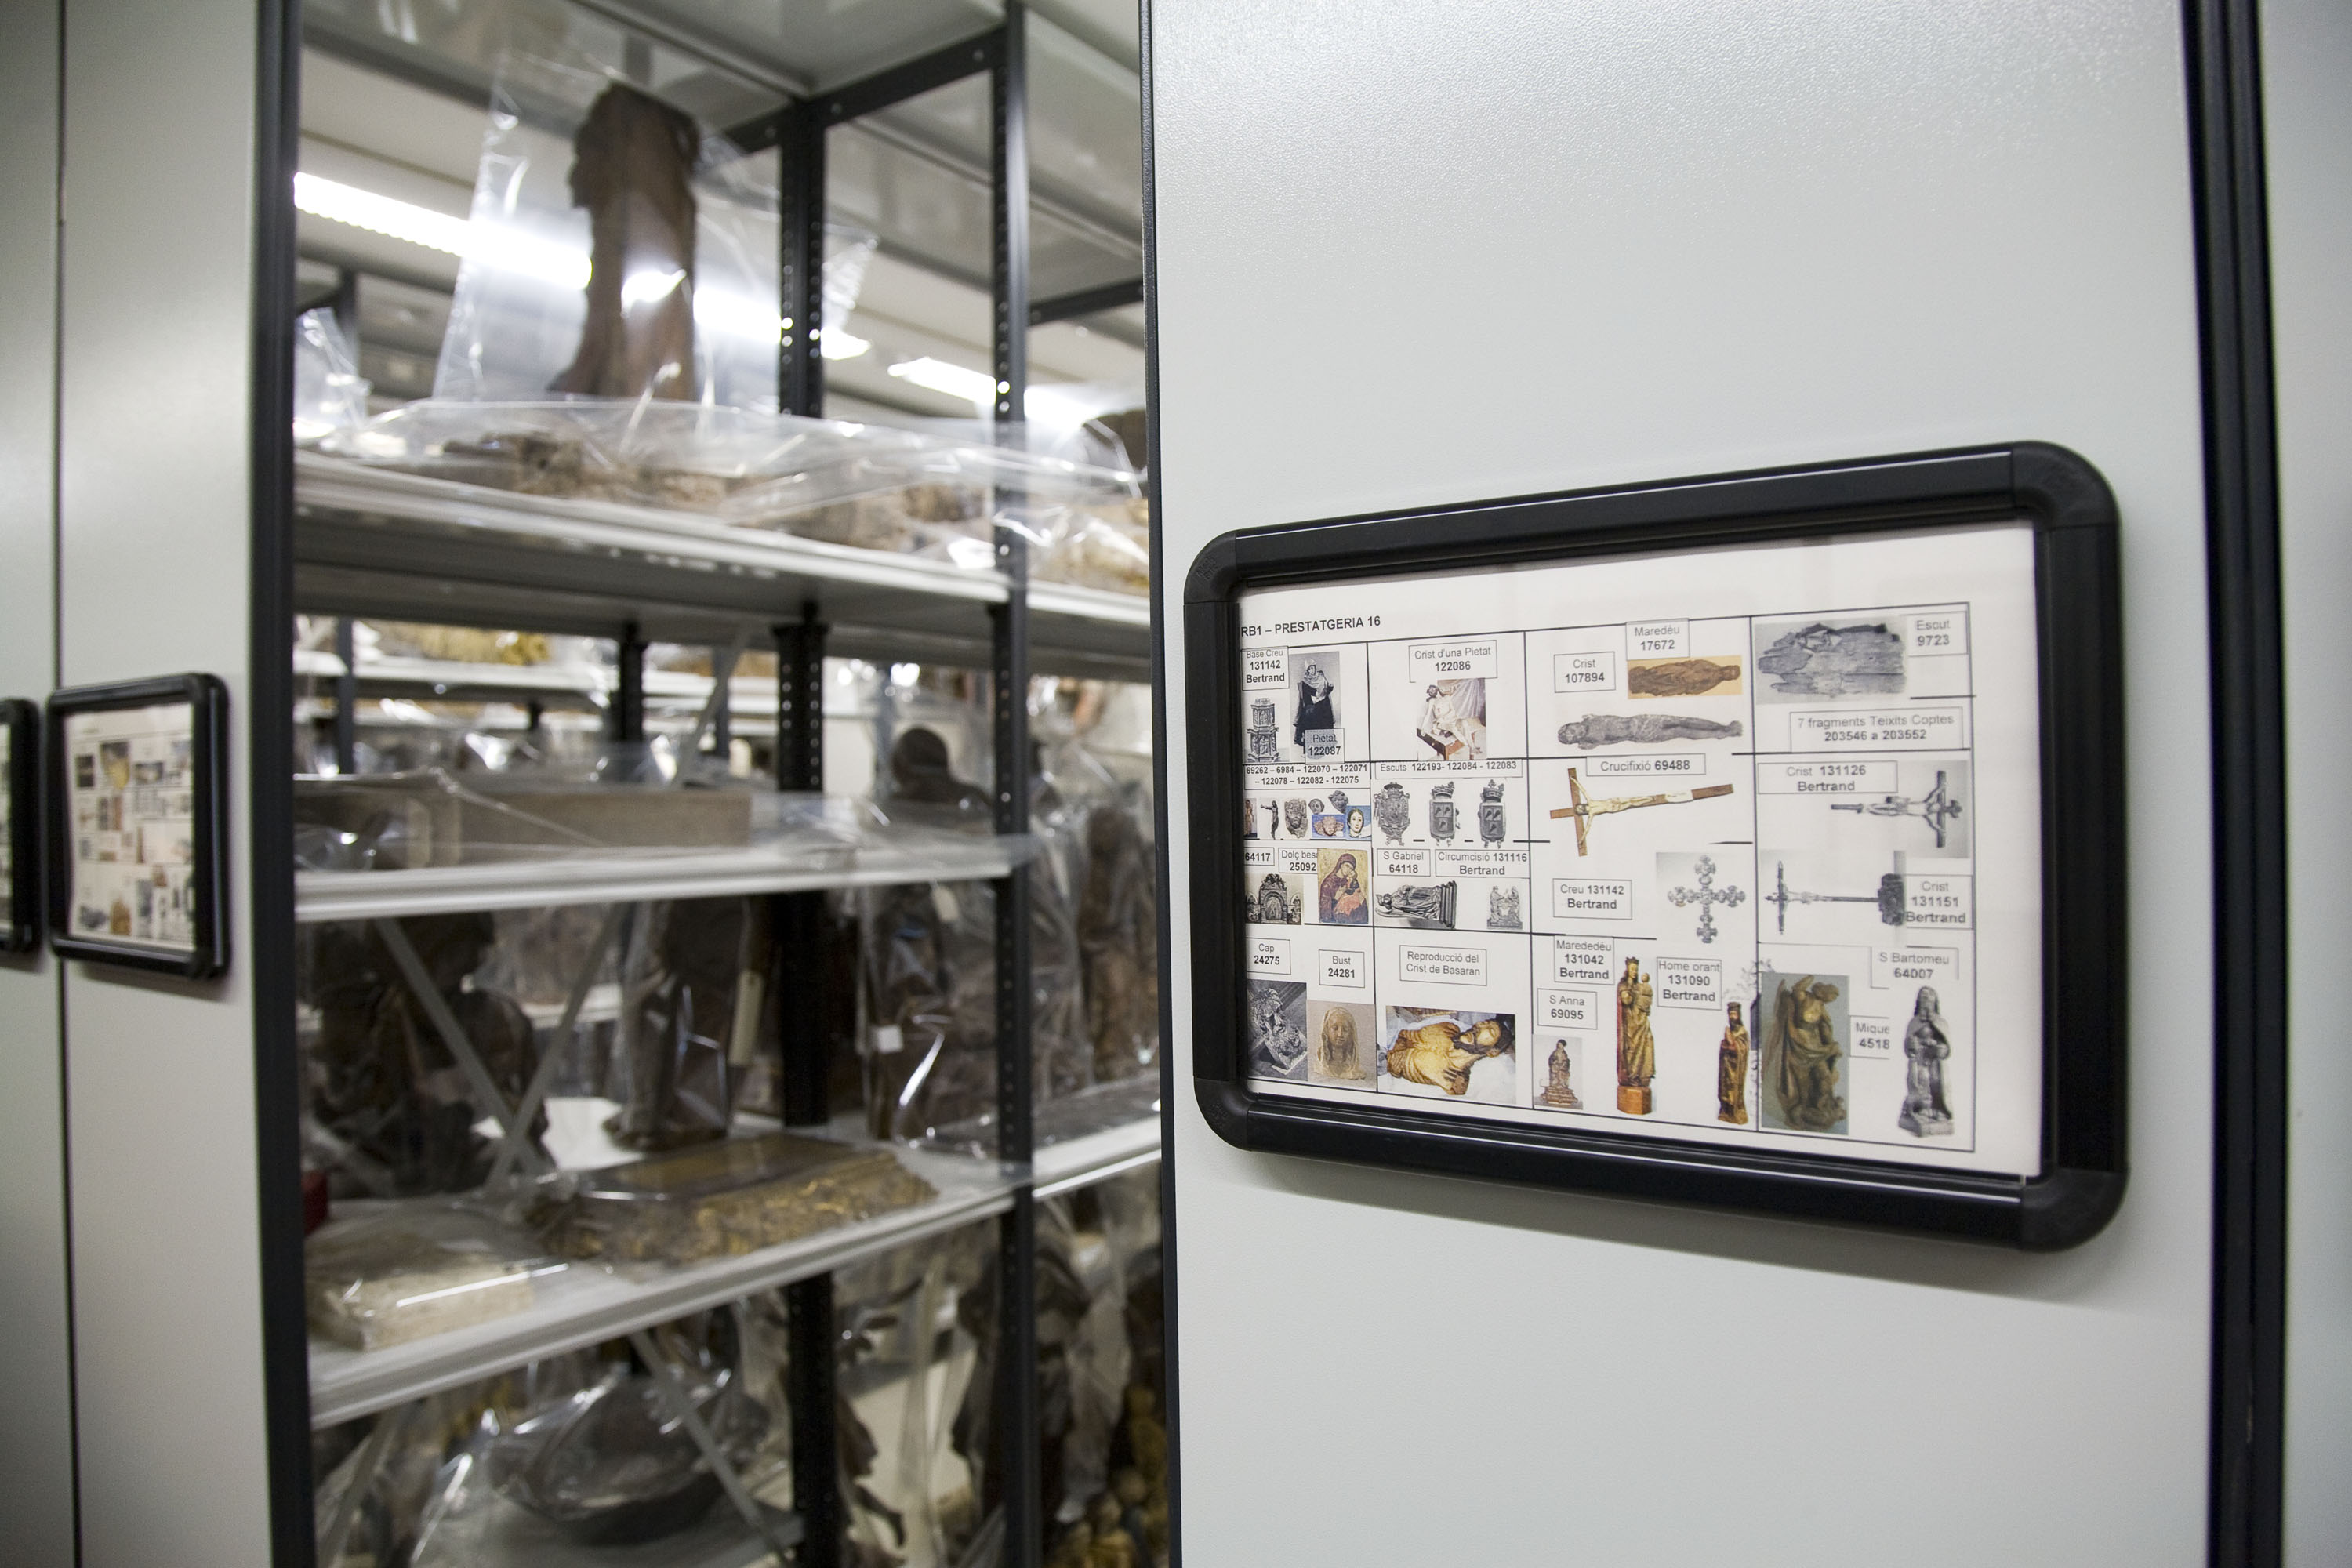 Control of locations of artworks in the Museu Nacional's reserves